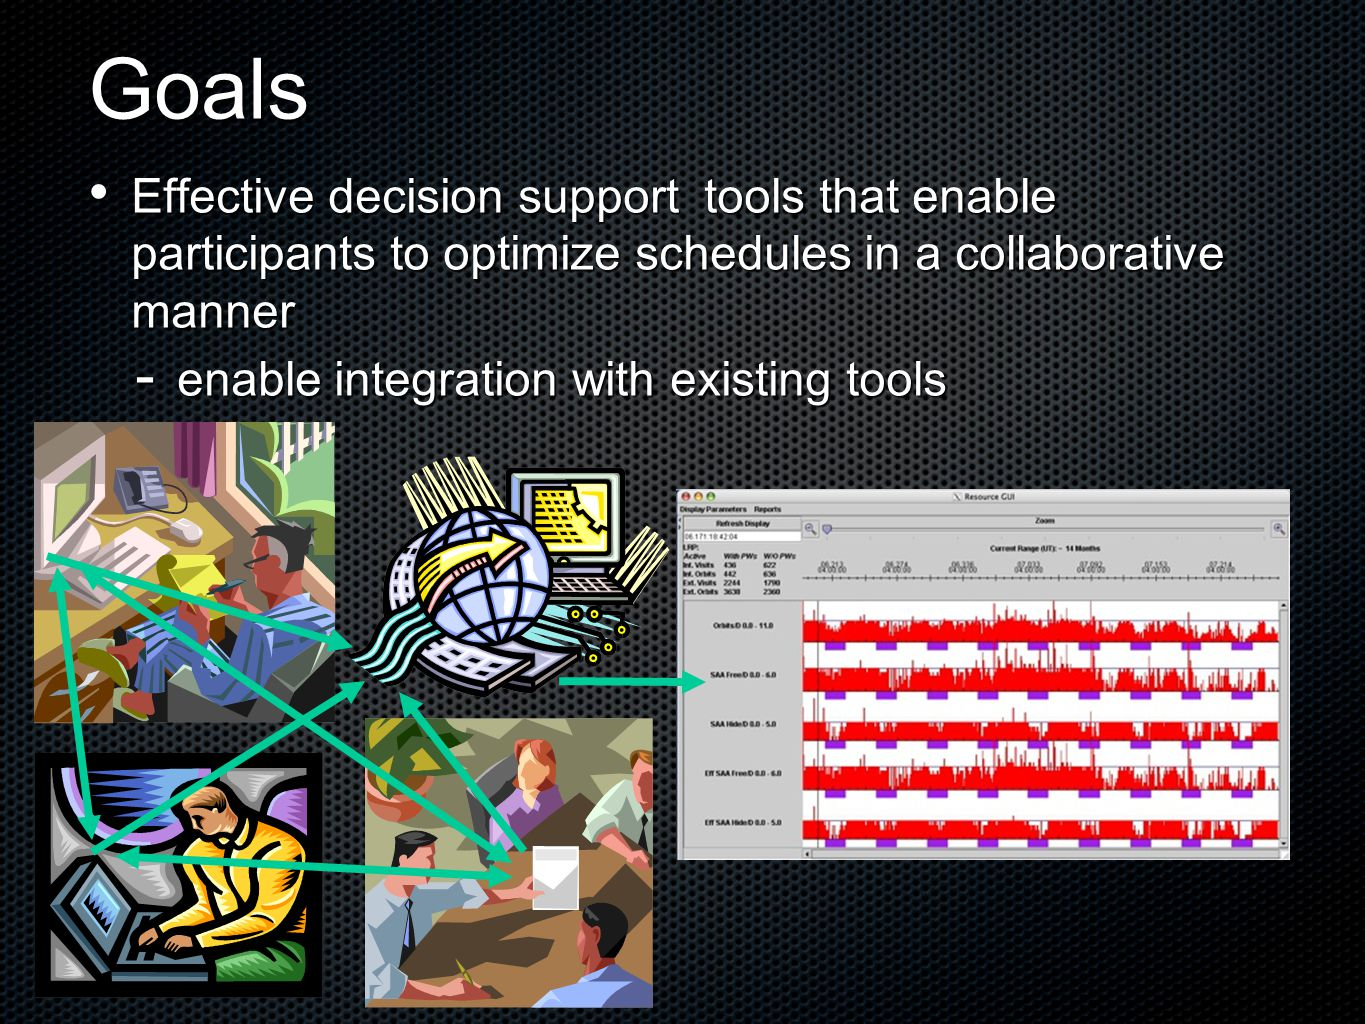 Goals Effective decision support tools that enable participants to optimize schedules in a collaborative manner Effective decision support tools that enable participants to optimize schedules in a collaborative manner  enable integration with existing tools